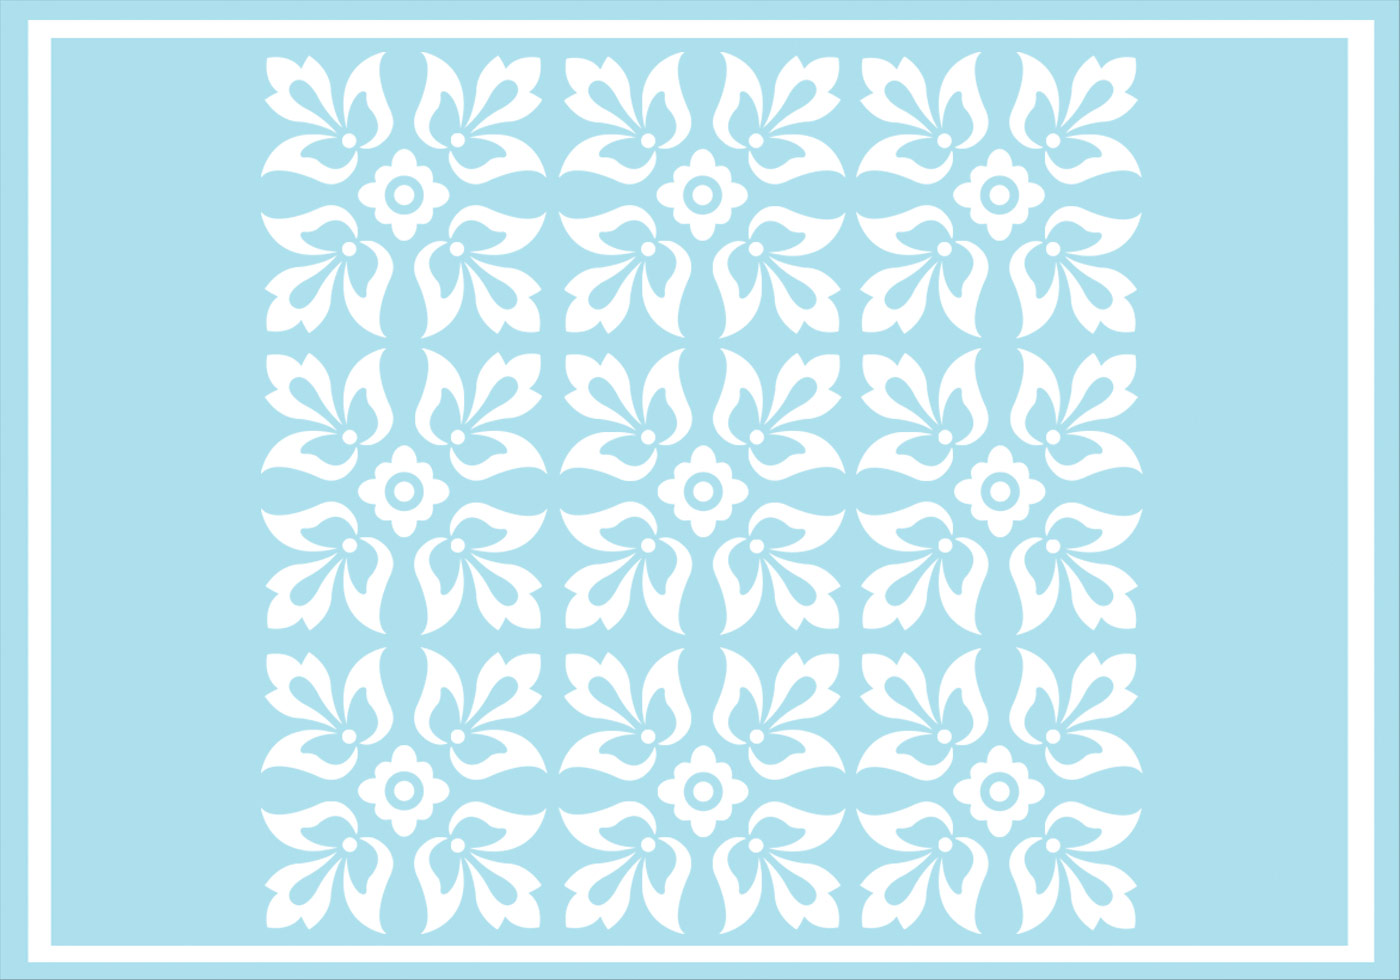 Floral Ornament Vector Free: Blue Floral Ornament Vector Pattern